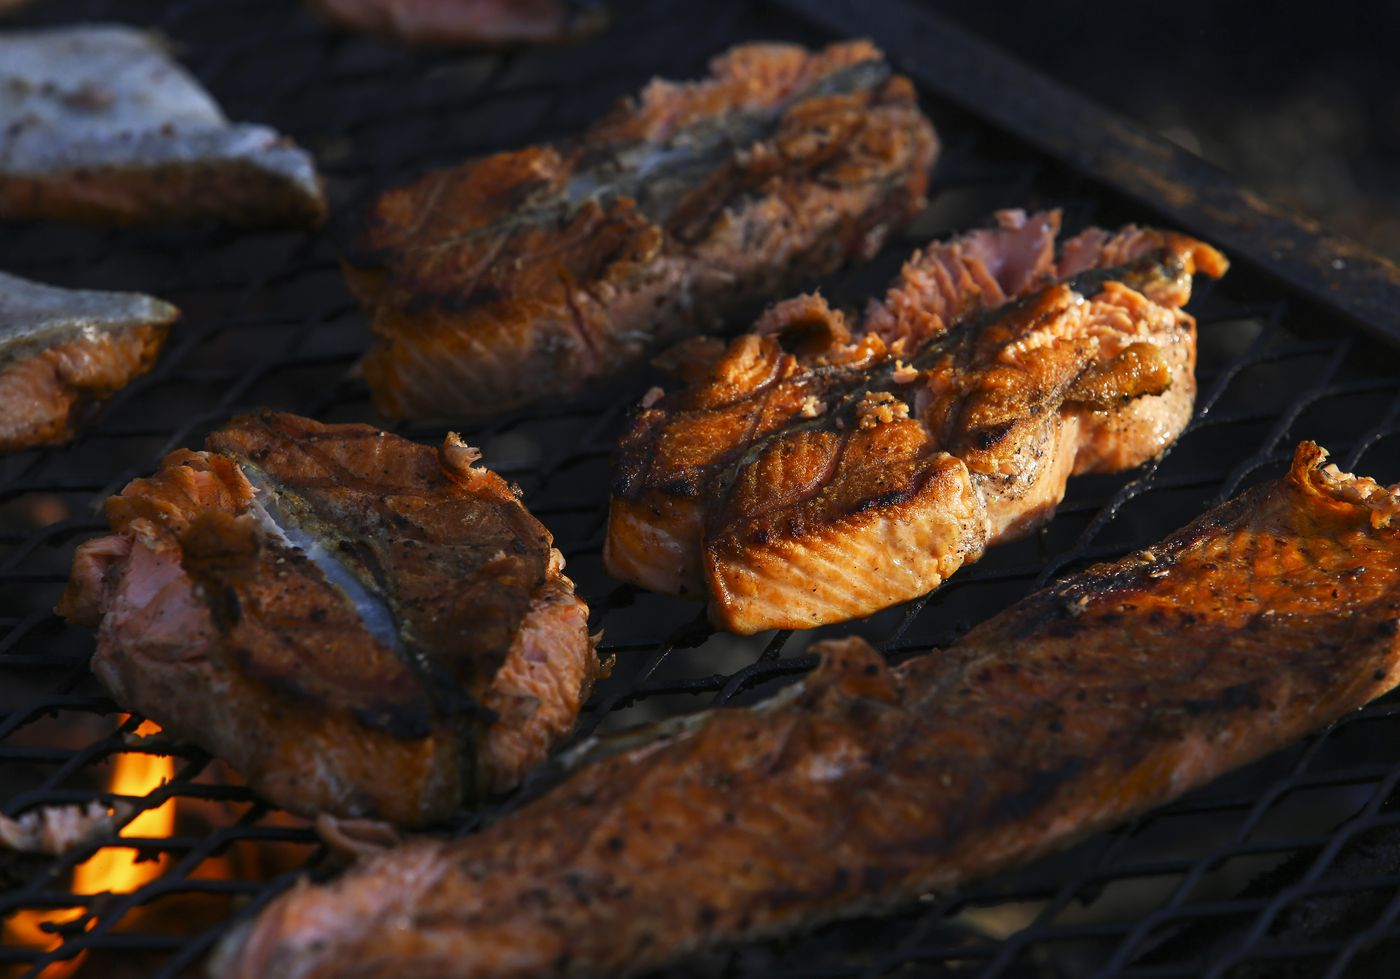 King salmon cooks over a flame on a grill at Hartney Bay in Cordova on Tuesday, May 18, 2021. The salmon was harvested by fisherman Matt Honkola the night before during the first Copper River opener of the season. (Emily Mesner / ADN)